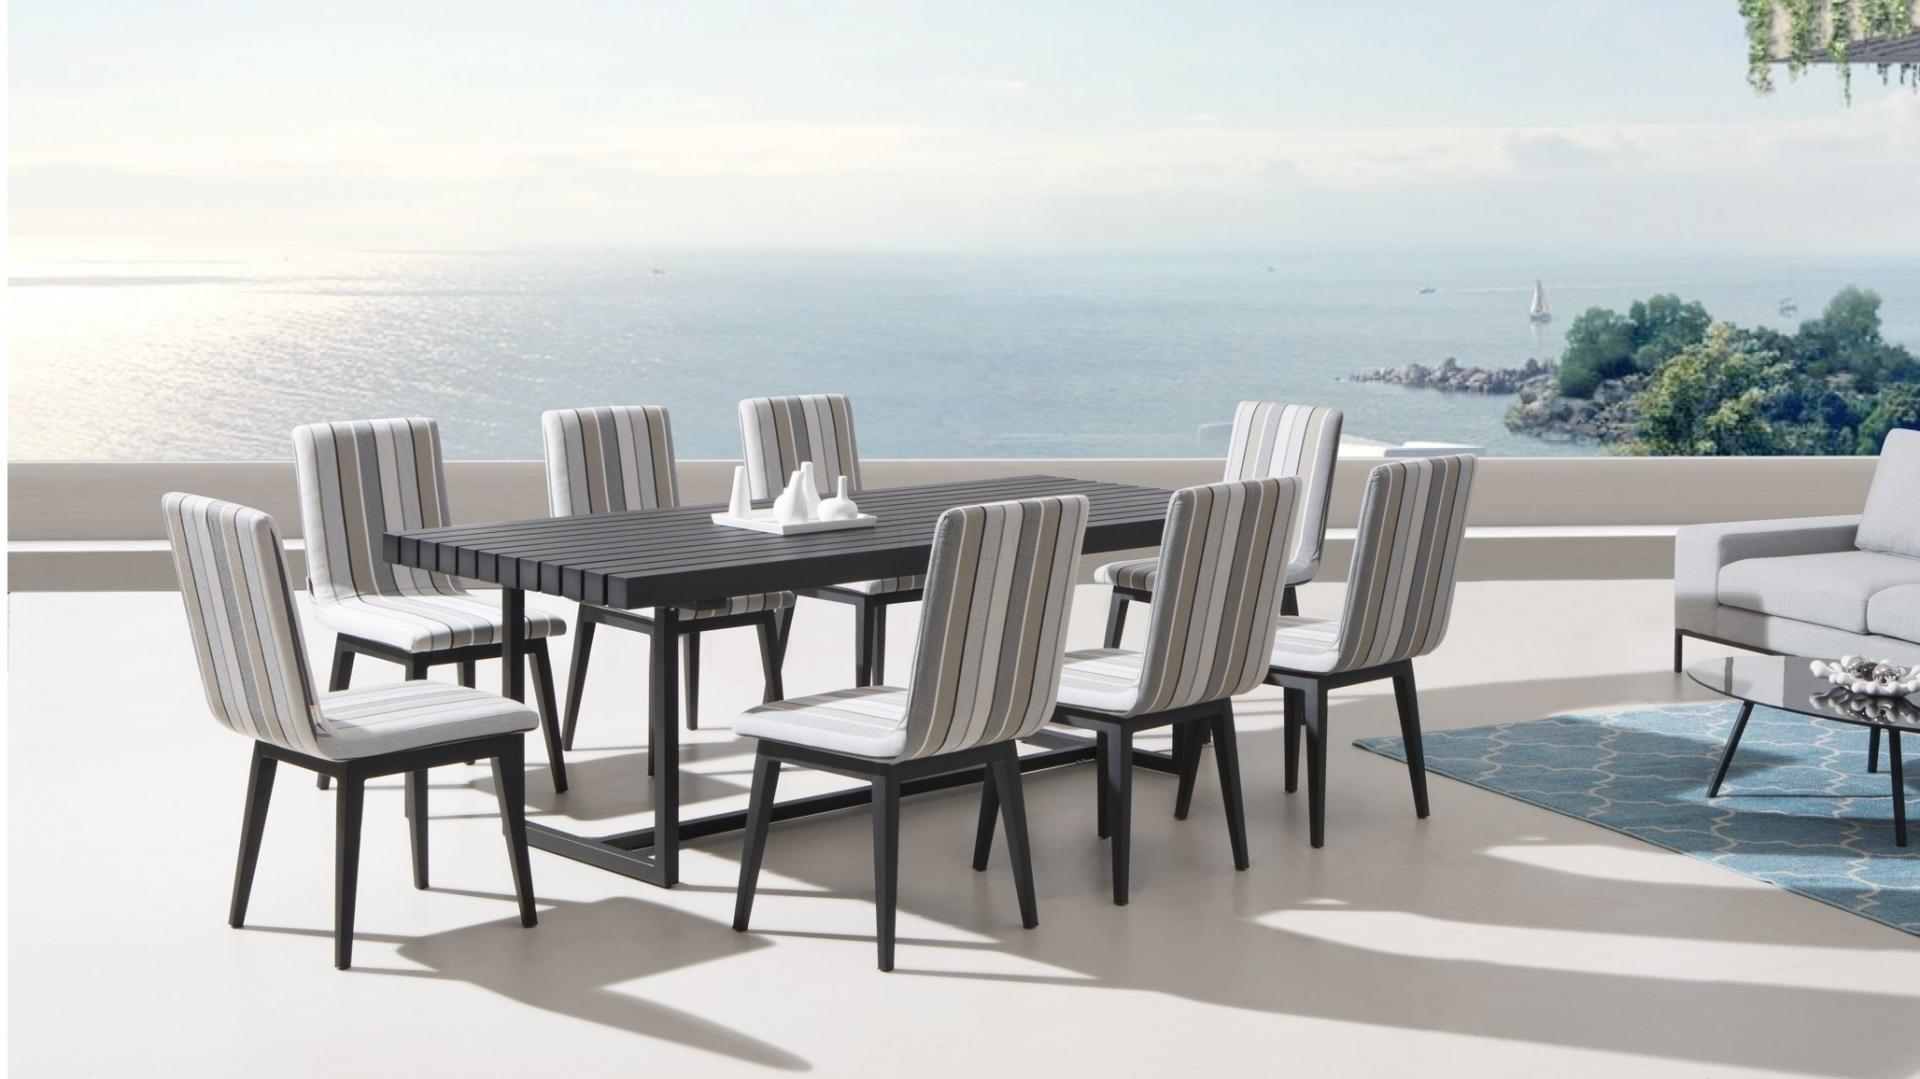 16 Seater Dining Table Elite 9 Piece Outdoor Aluminium Dining Set With Kroes